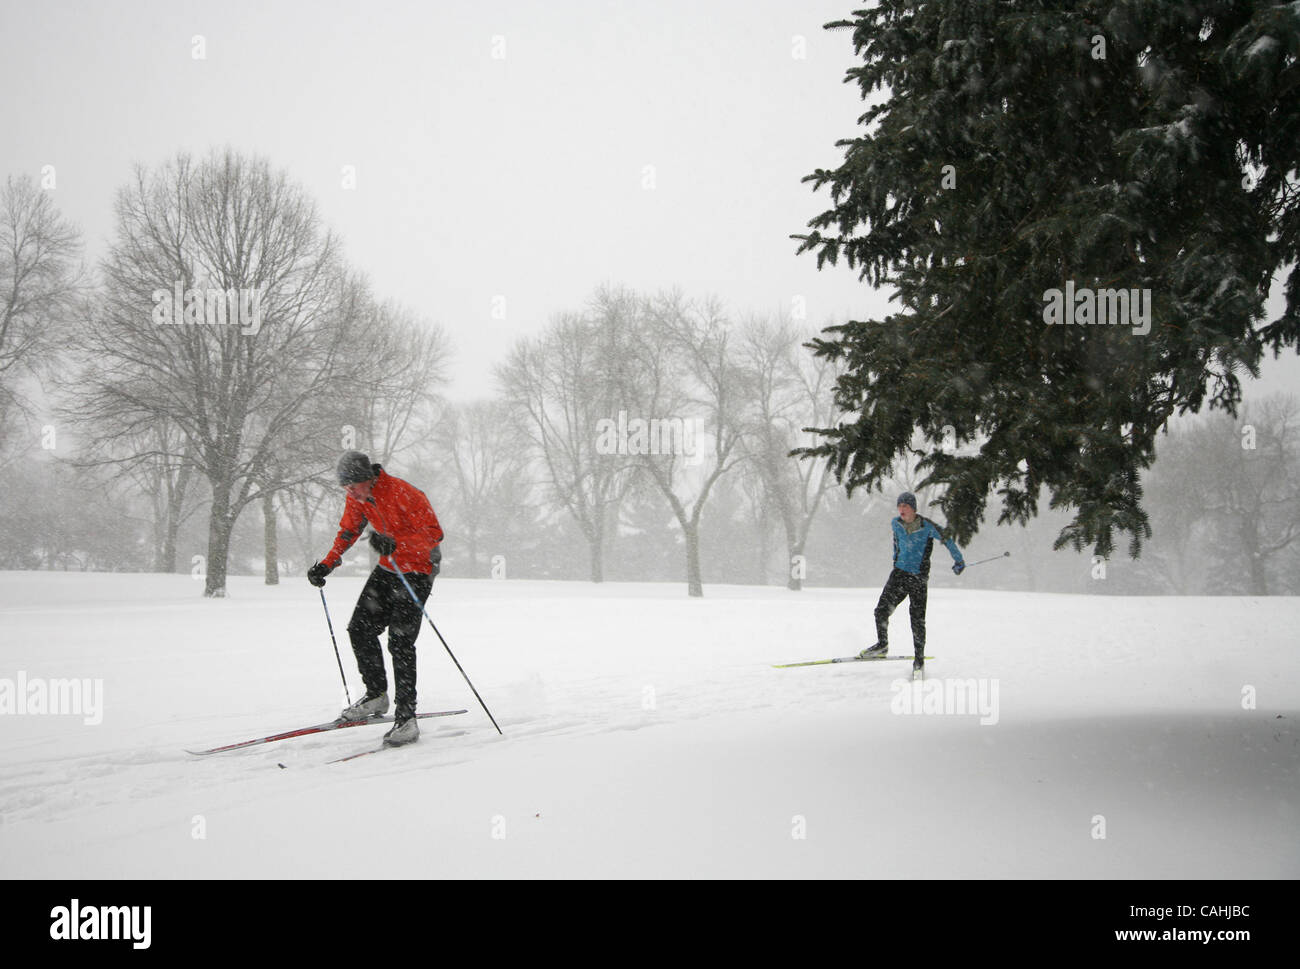 Dec 04, 2007 - St  Paul, Minnesota, USA - More snow fell